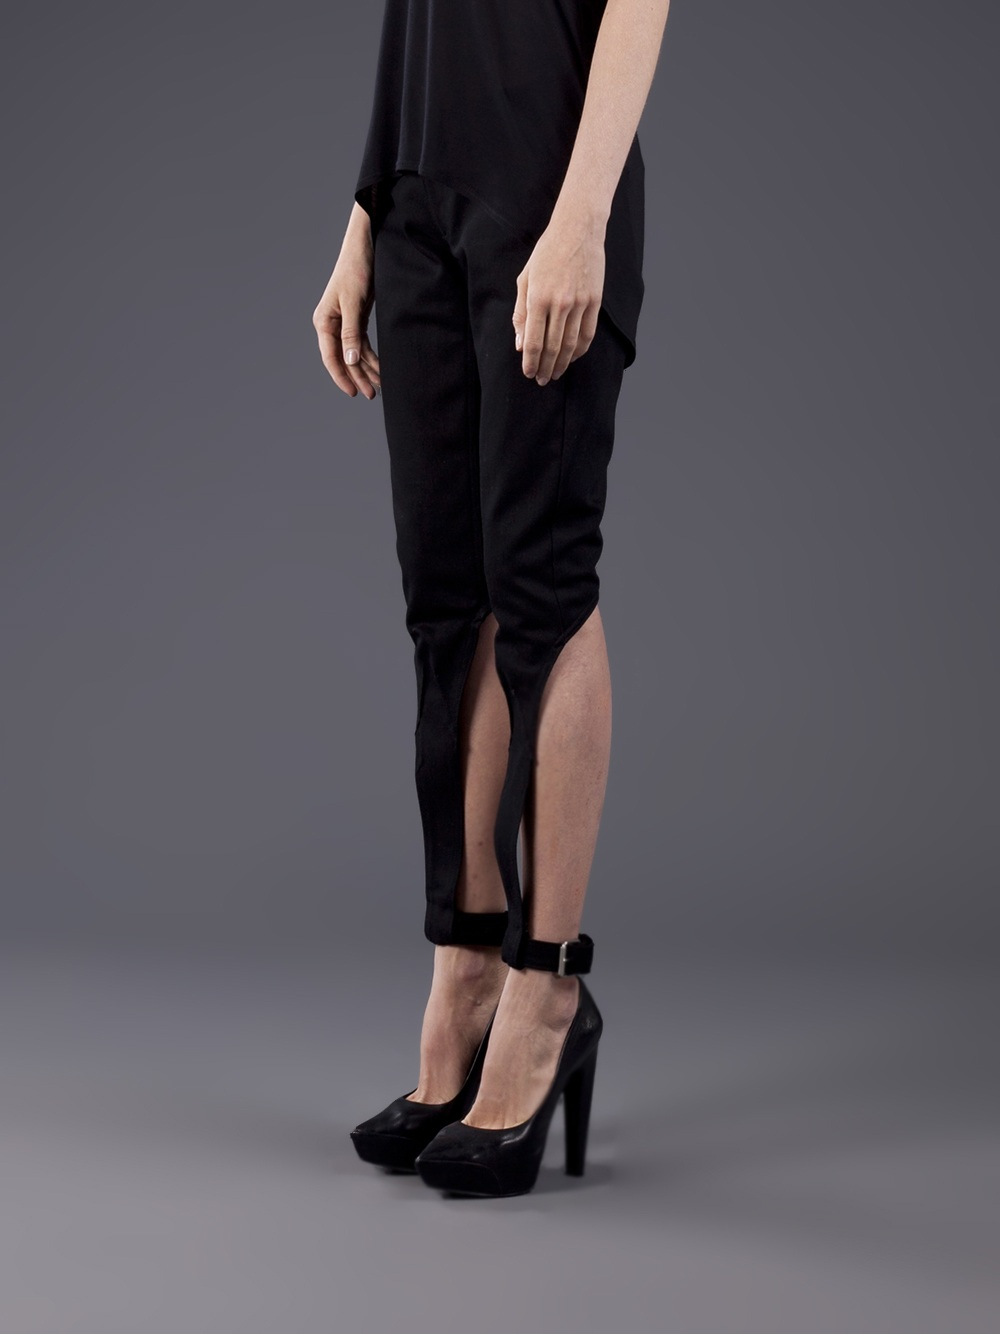 Dominic Louis Cutout Denim Jean - Odd. - Farfetch.com_files.jpg